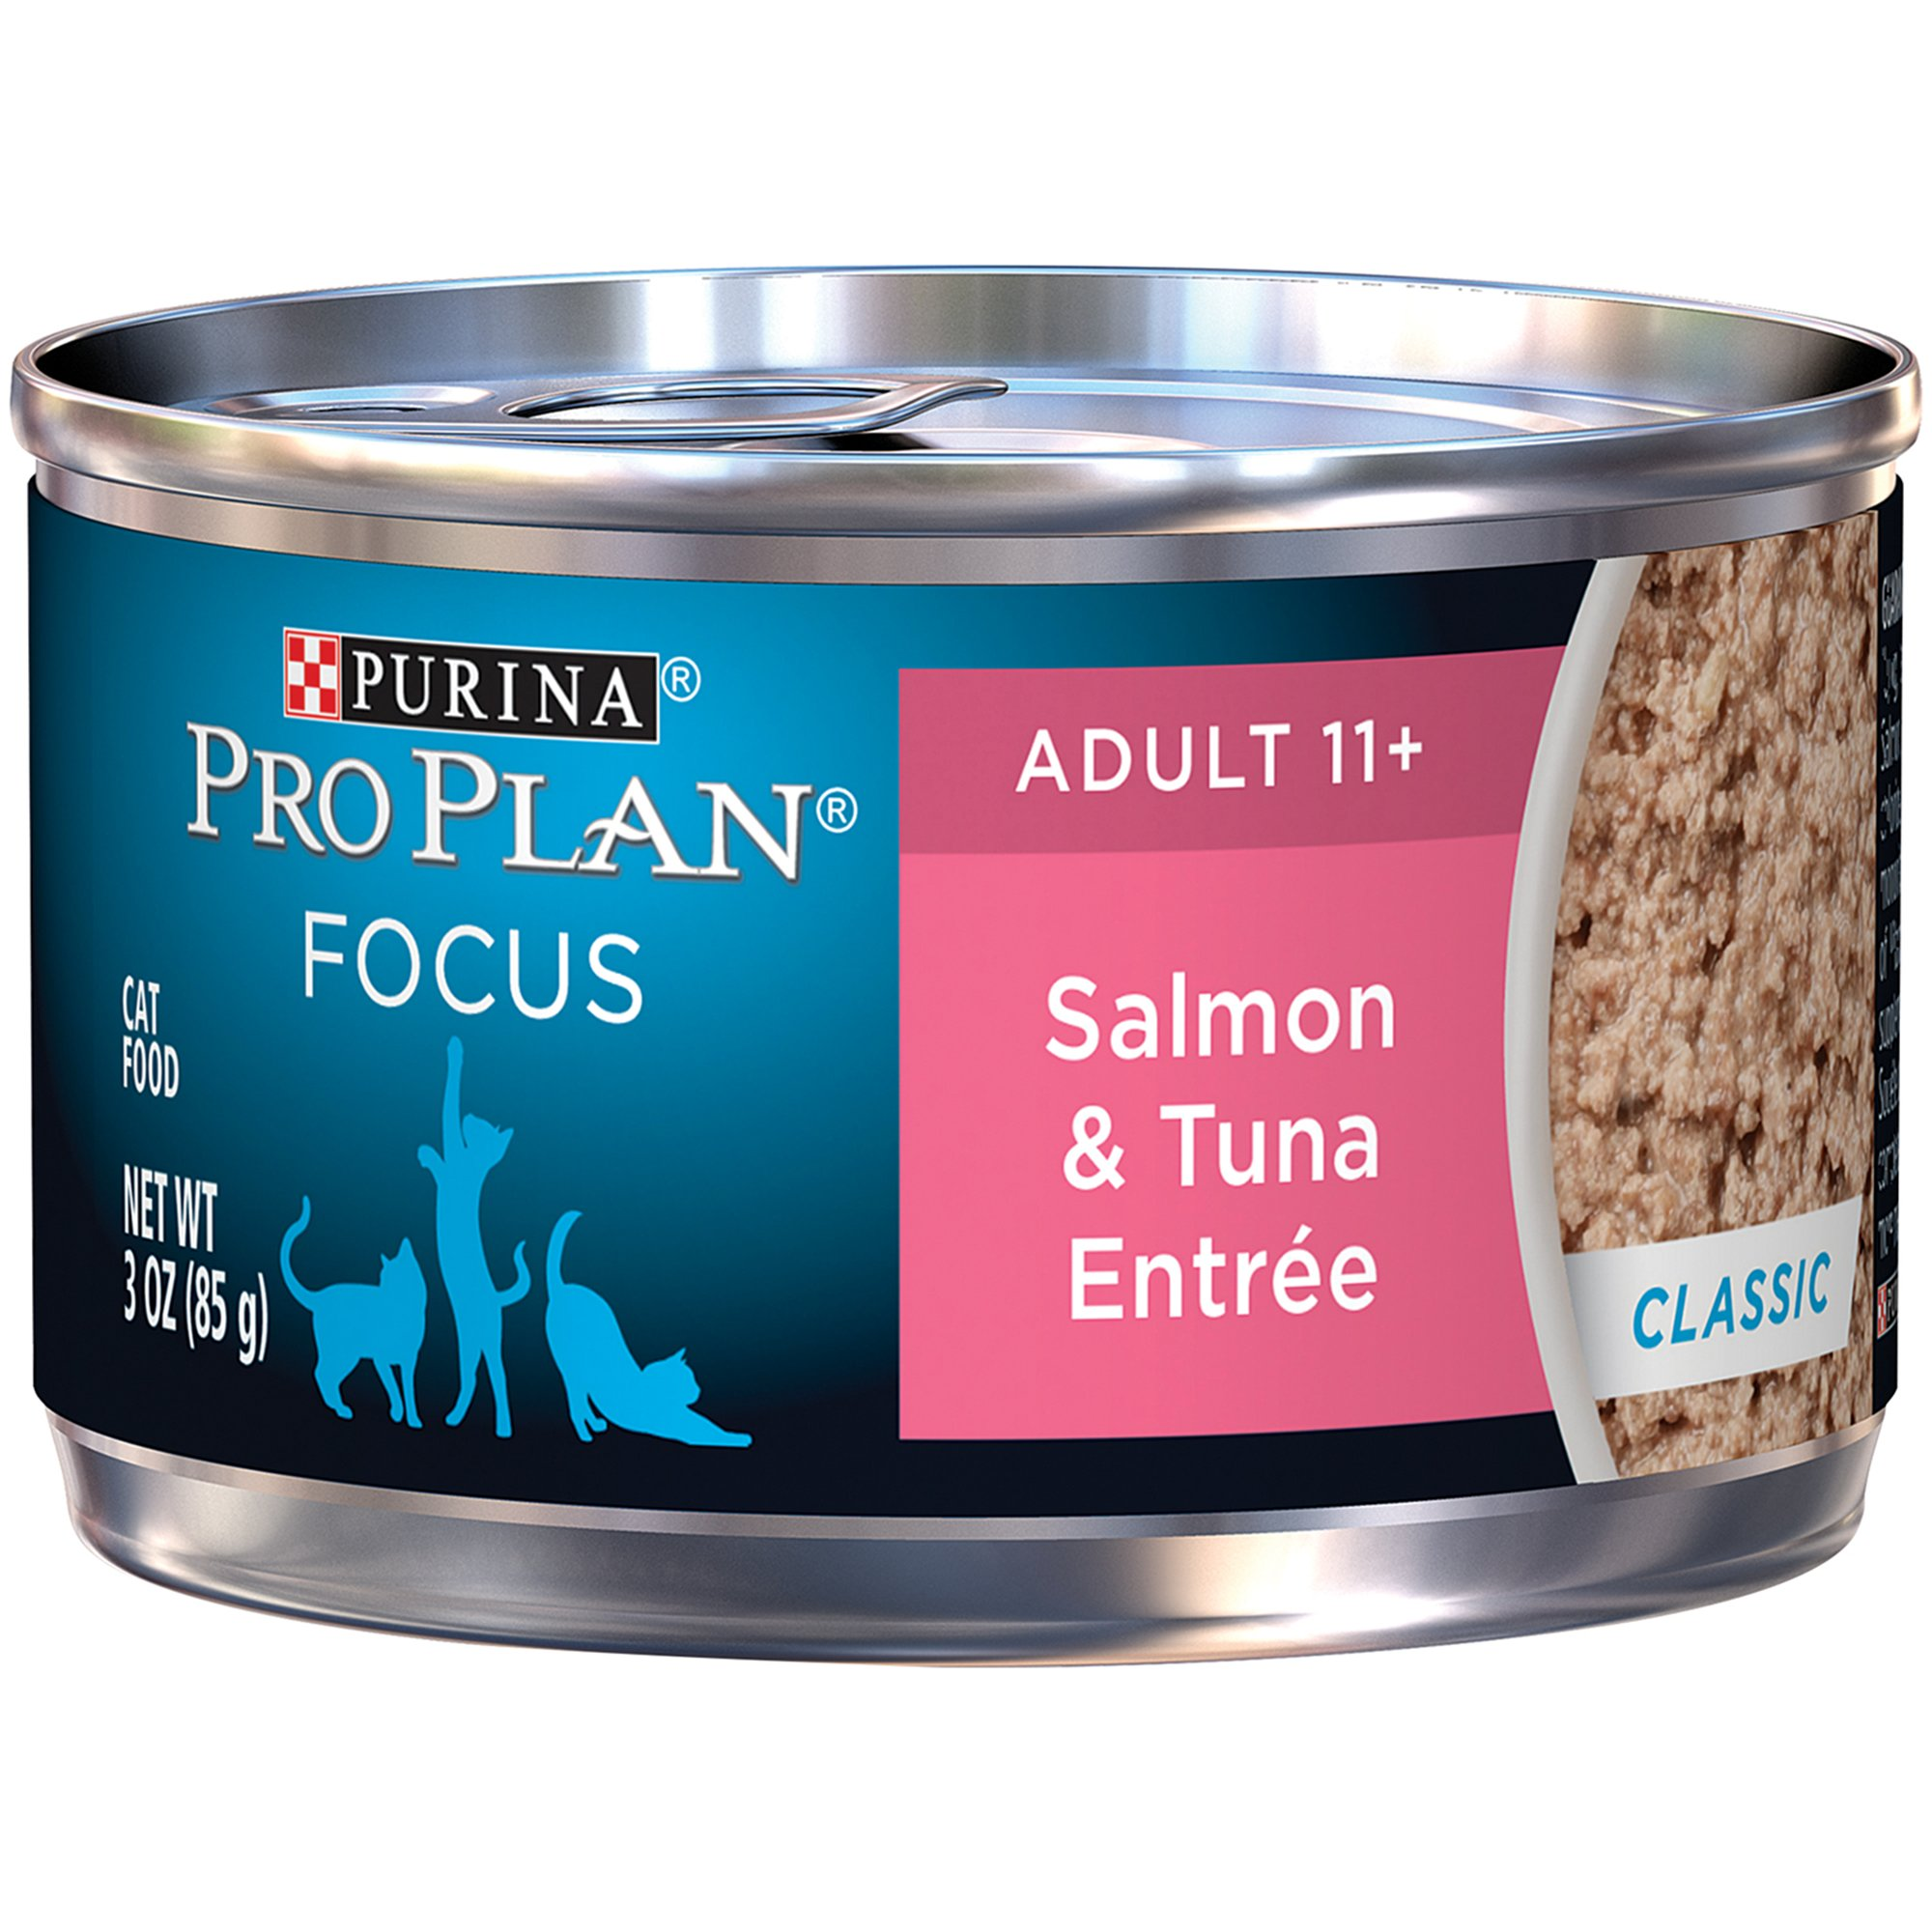 Pro Plan Focus Entrees Adult 11+ Canned Cat Food, Salmon & Tuna